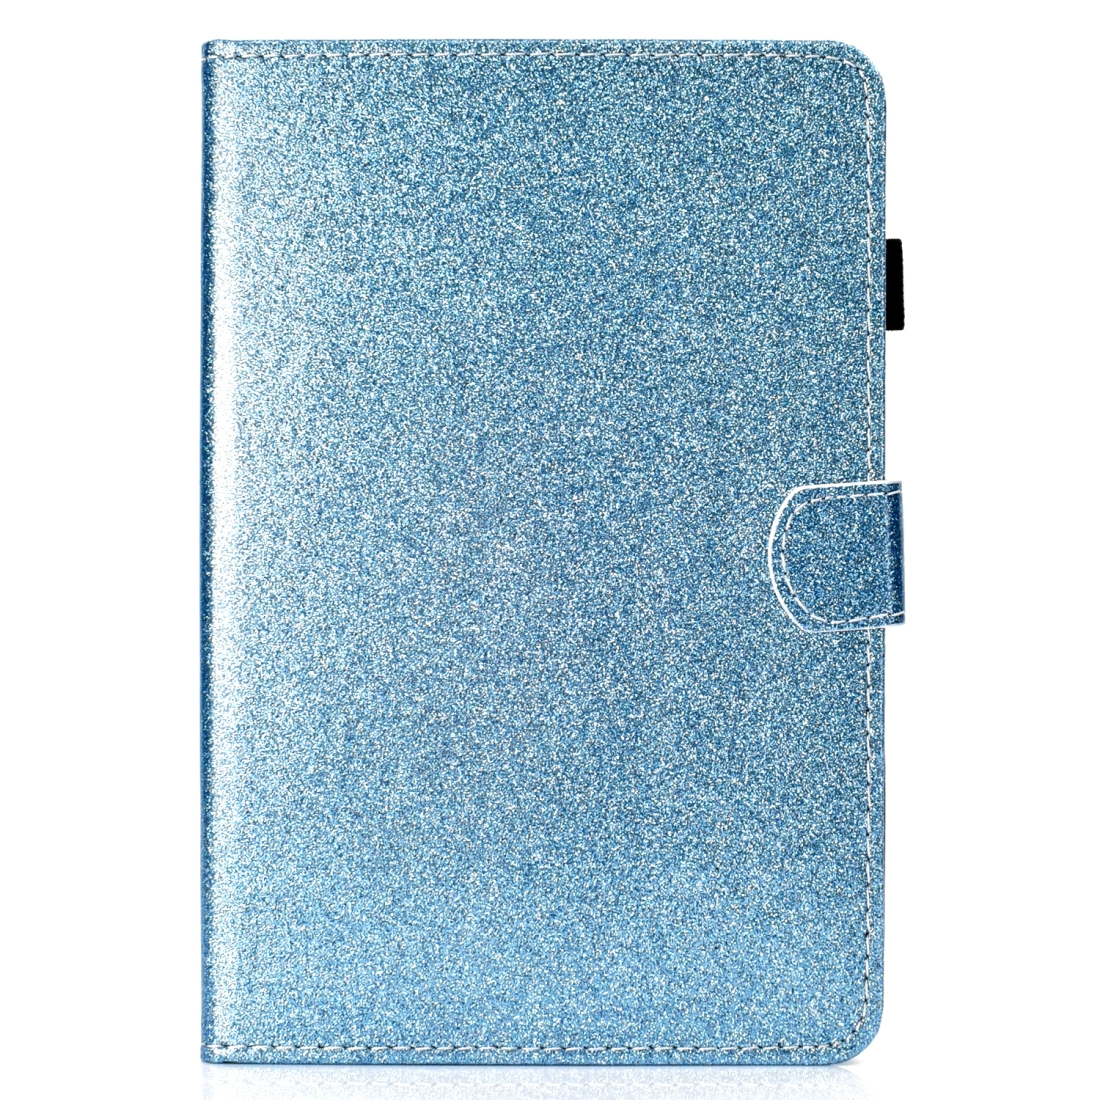 Bling Glitter Leather iPad Mini 5 Case, Also Fits iPad Mini 1,2,3,4, With Sleeve (Blue)